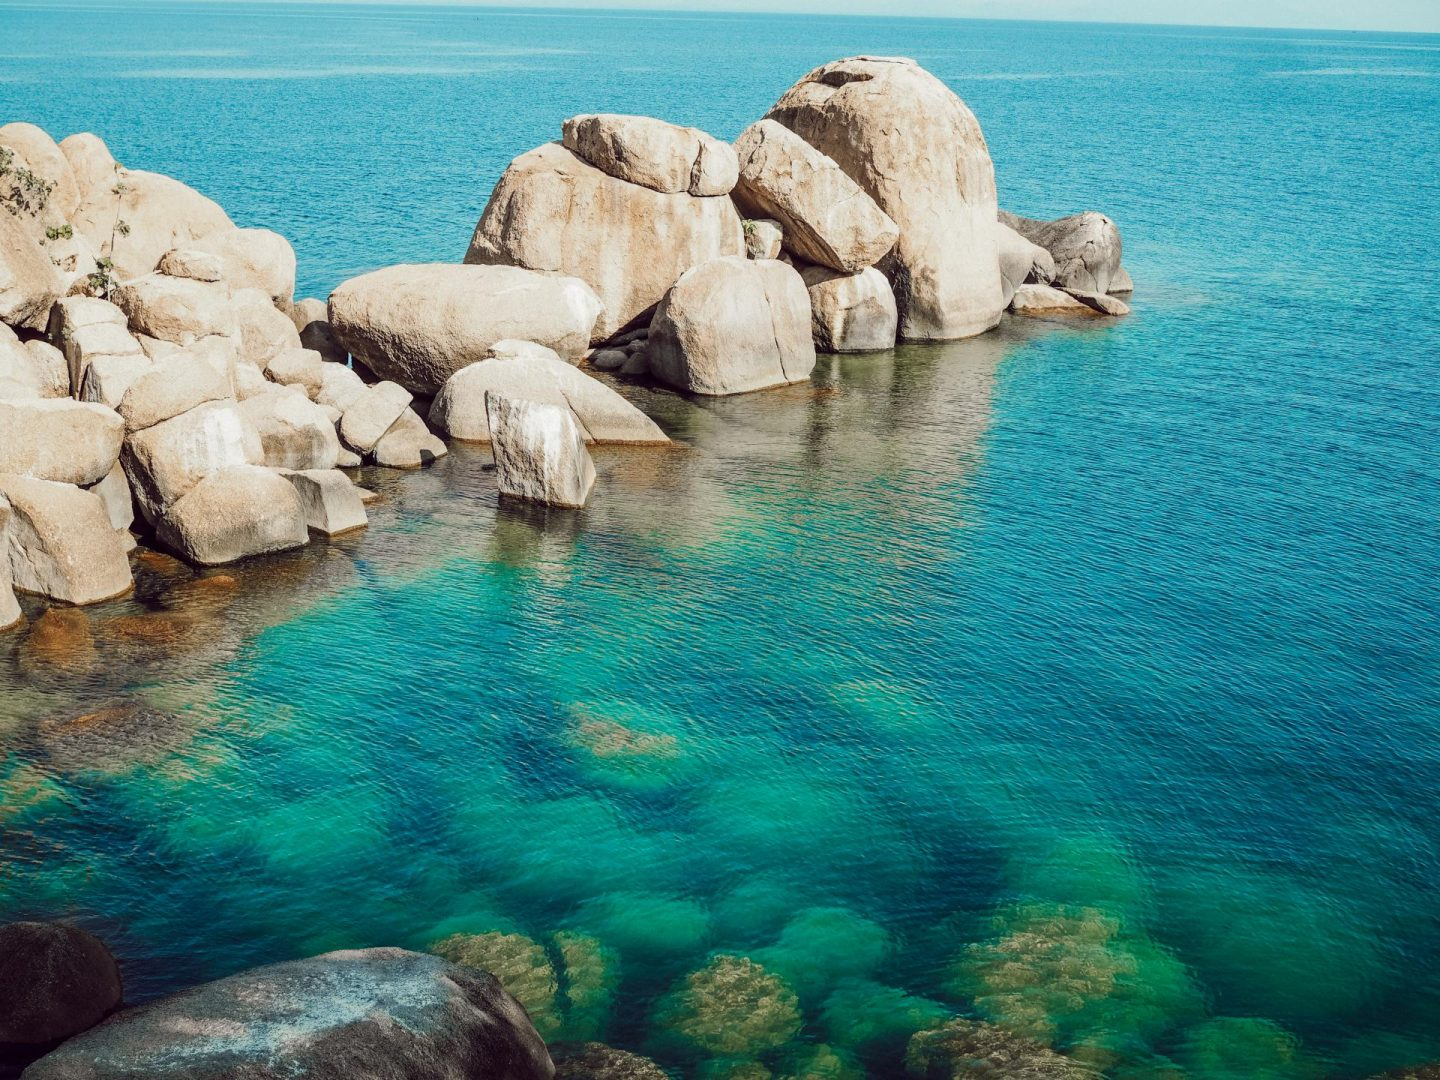 Mumbo Island in Lake Malawi